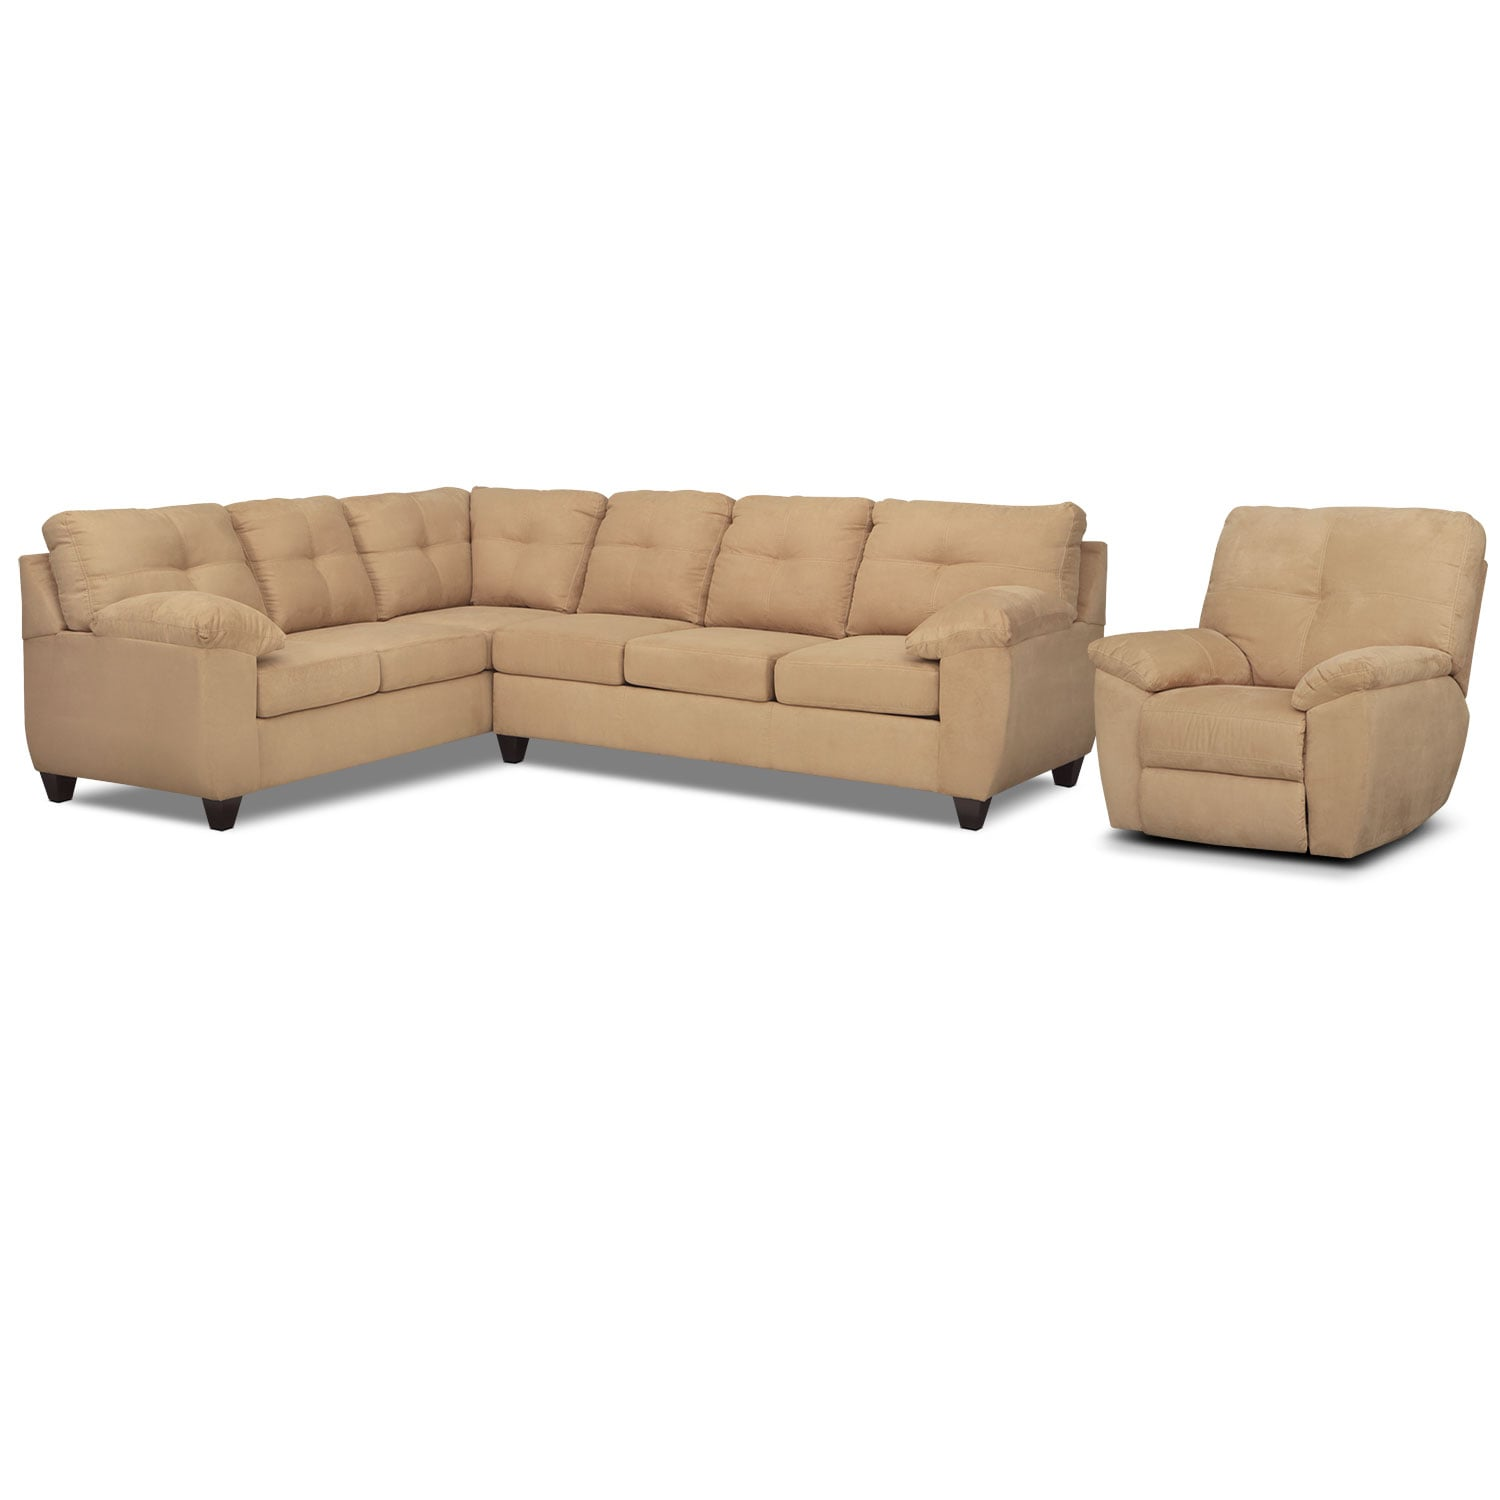 Living Room Furniture - Rialto 2-Piece Sectional with Left-Facing Corner Sofa and Glider Recliner Set - Camel